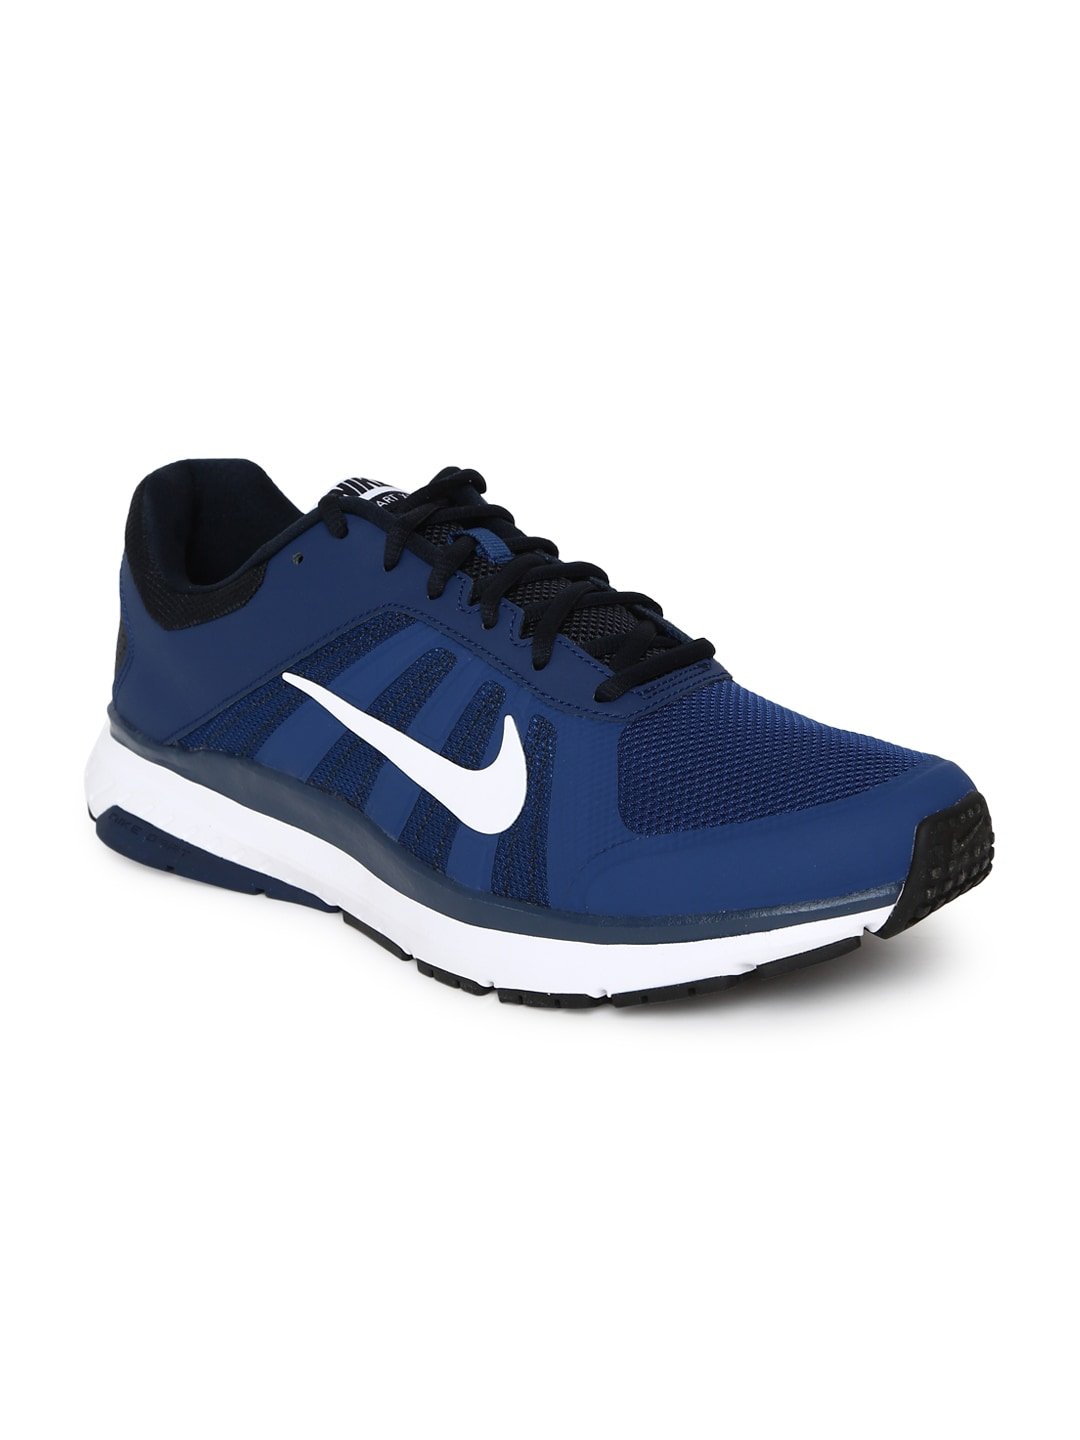 Shoes Navy Blue In Nike Online Buy uTlKJ3F1c